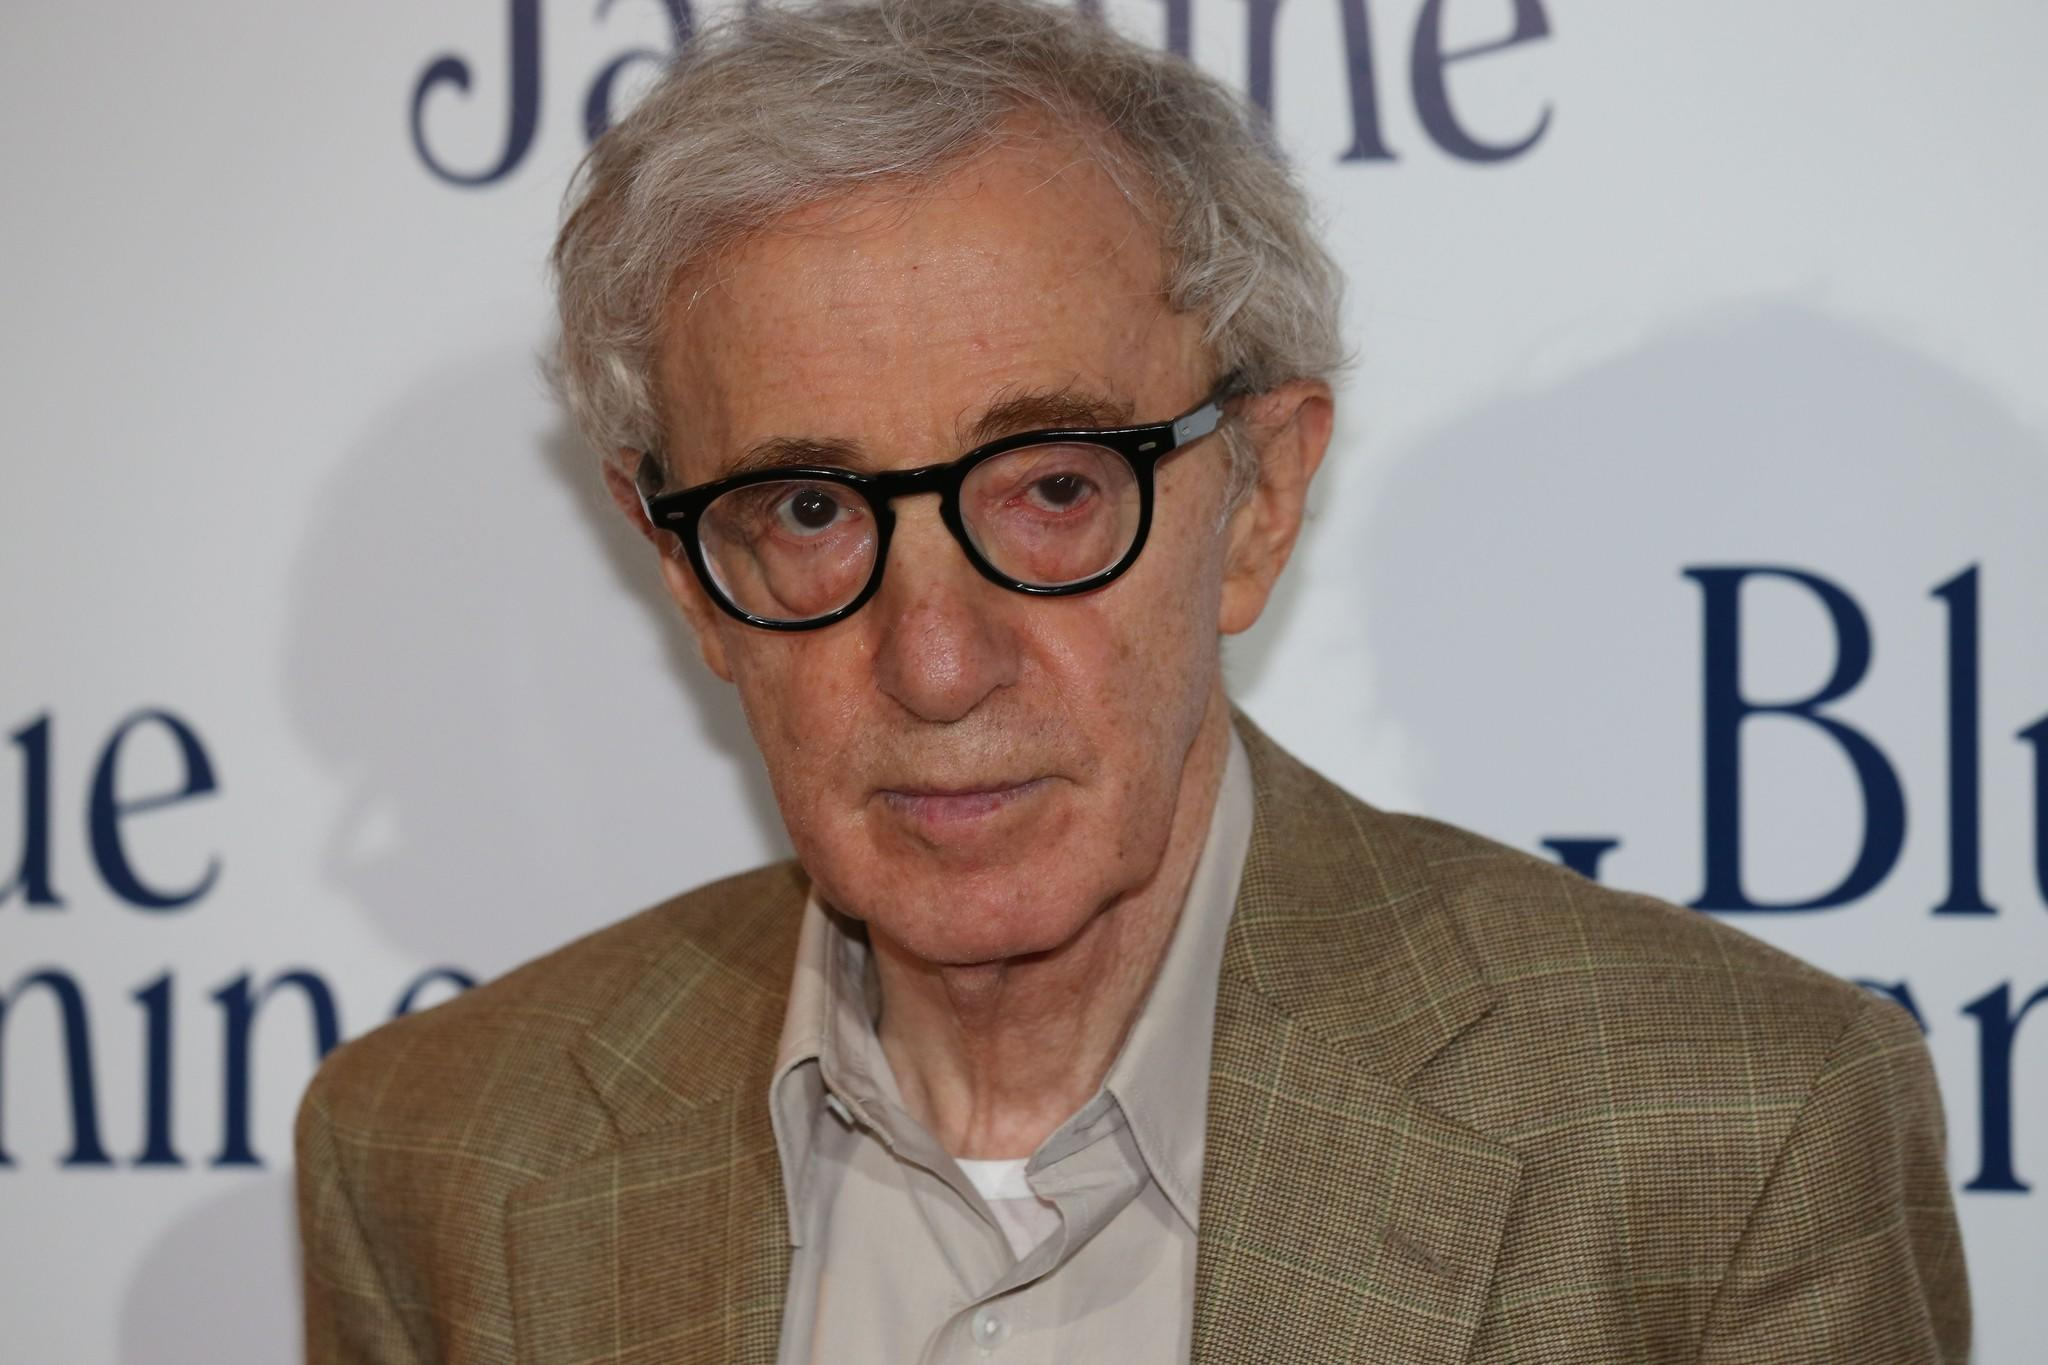 """In this file photo dated August 27, 2013 shows US film director Woody Allen posing during a photocall for the French Premiere screening of """"Blue Jasmine"""", his latest movie Paris."""